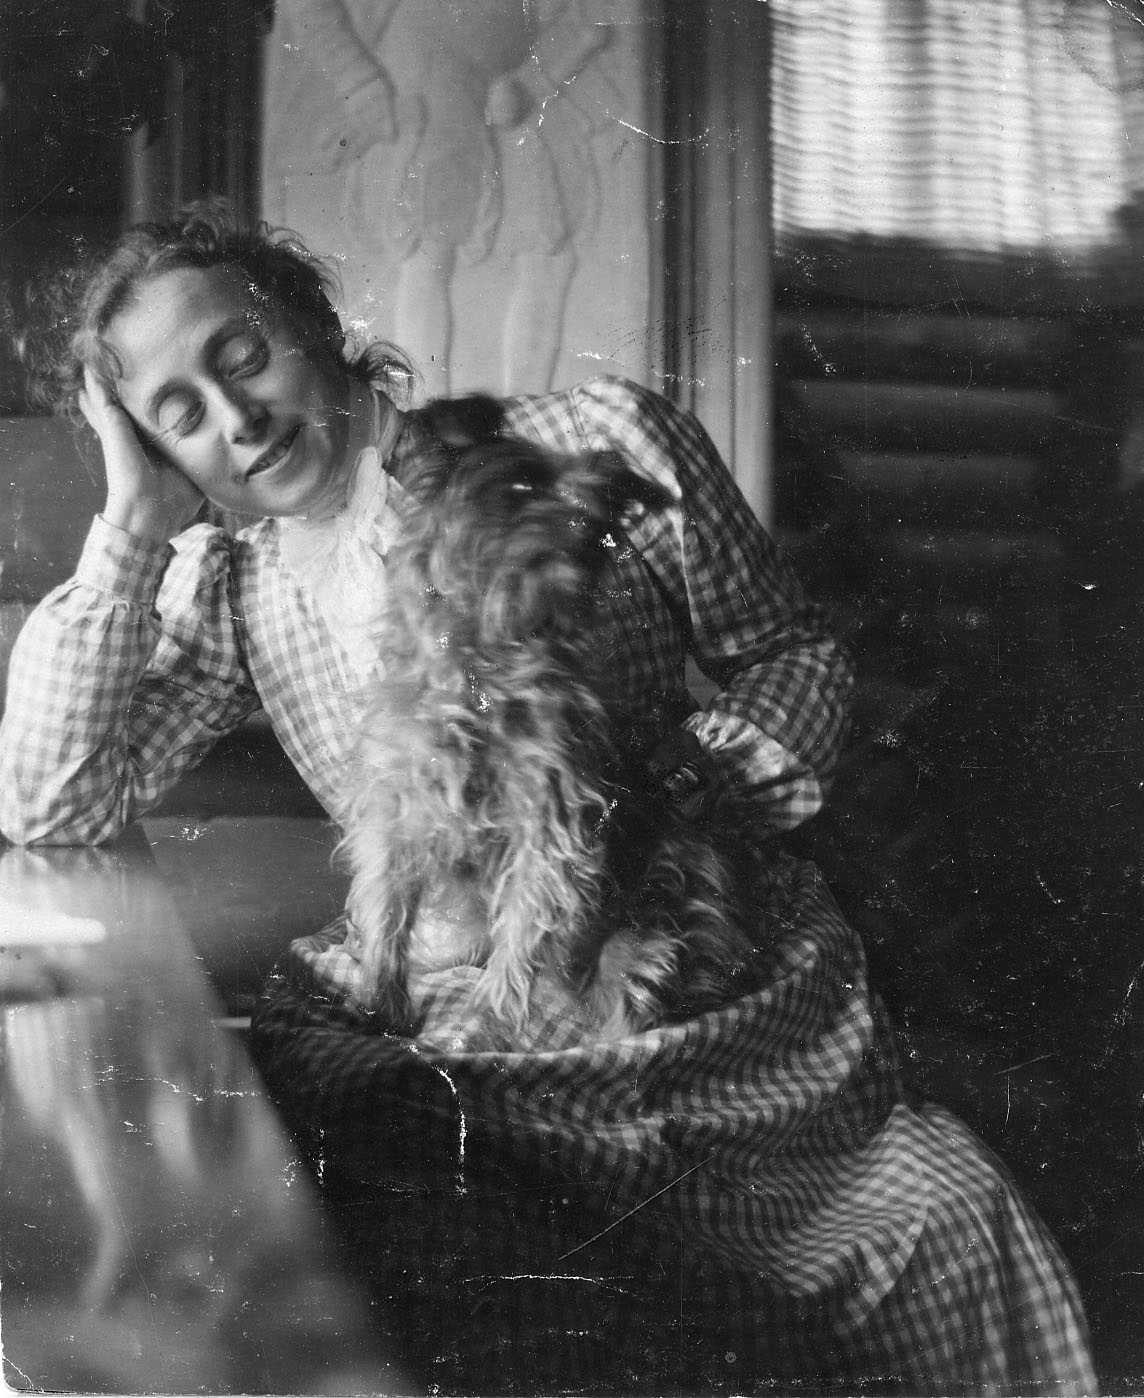 Emma Zorn with the Yorkshire Terrier Mouche at Zorn House, 1897. Photographer unknown (the Zorn Museum)